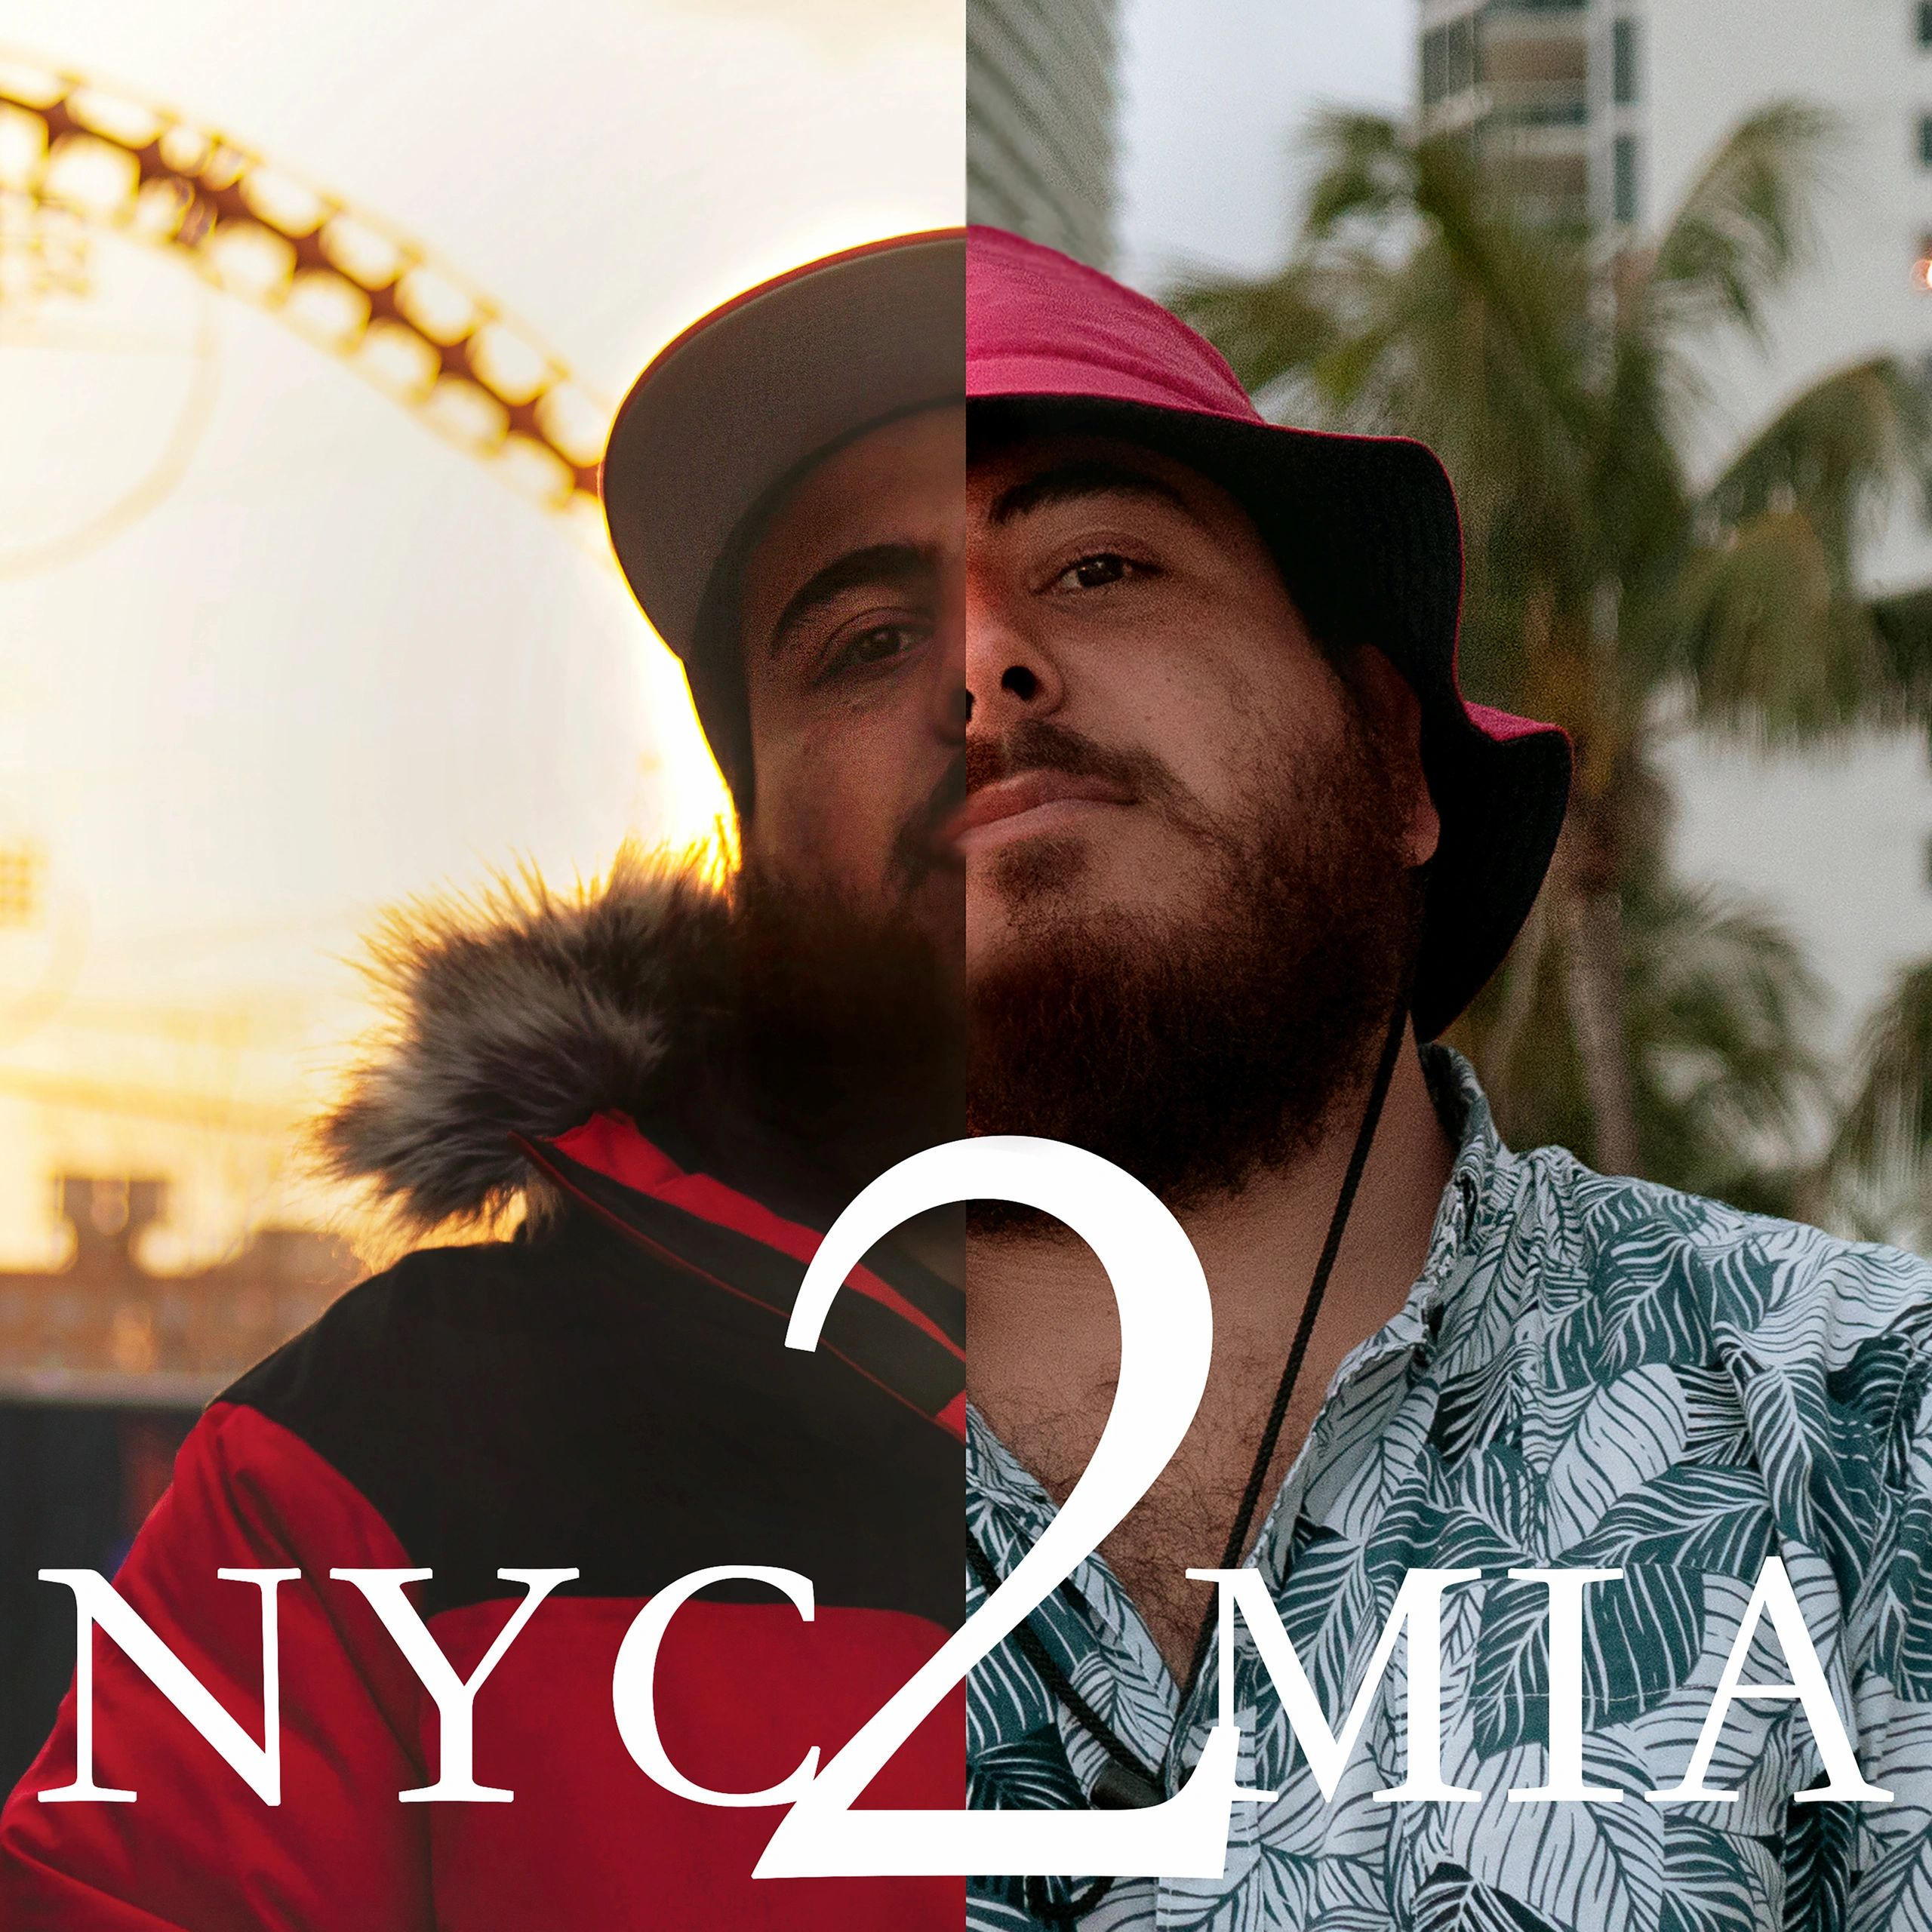 King Soloman NYC 2 MIA Official Mixtape